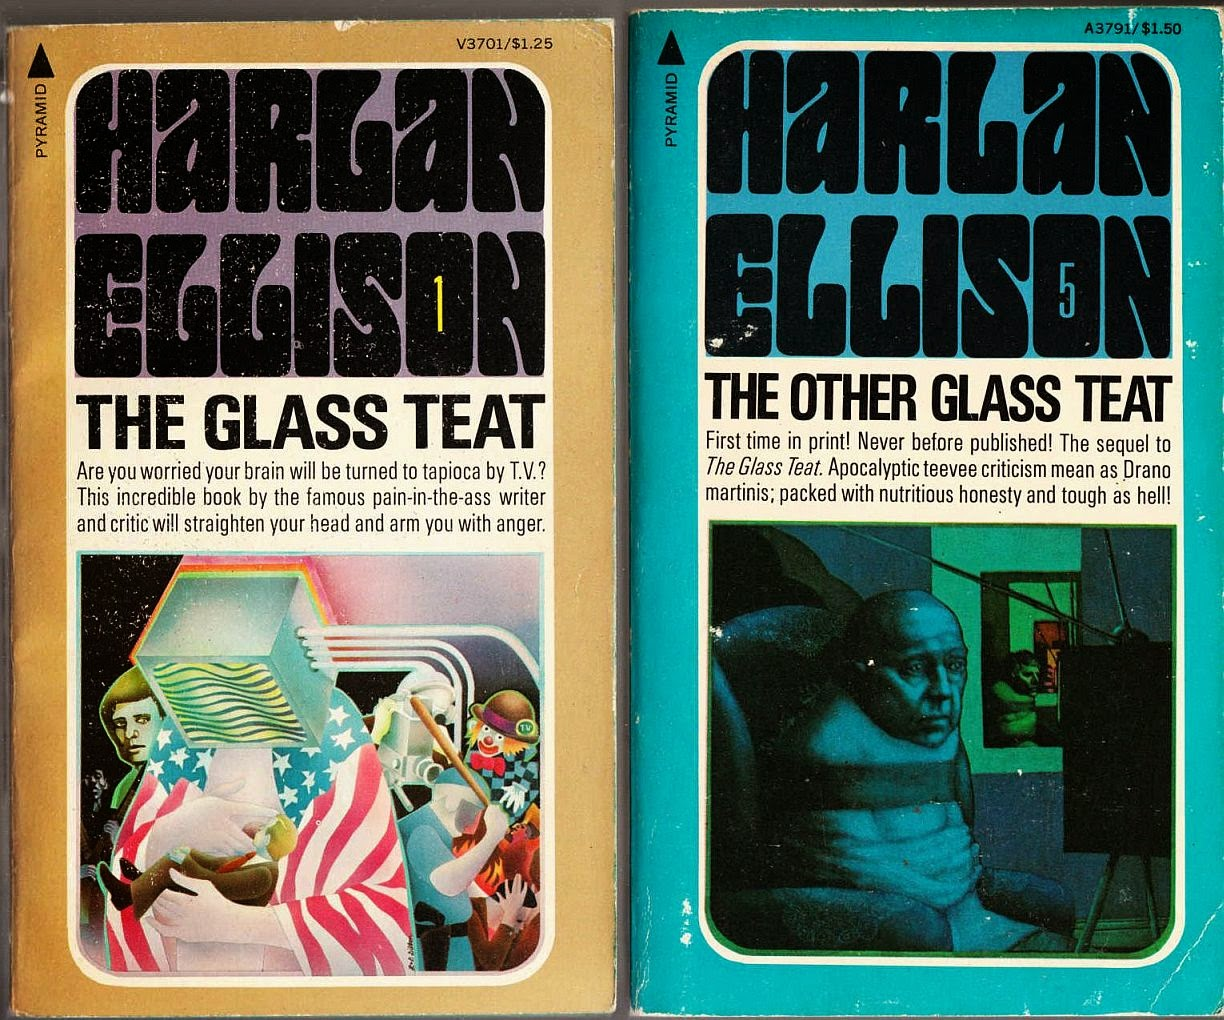 the glass essay the glass essay analysis write my paper services  critics at large harlan ellison at 80 a primer sleepless nights in the procrustean bed 1984 an essay for the glass